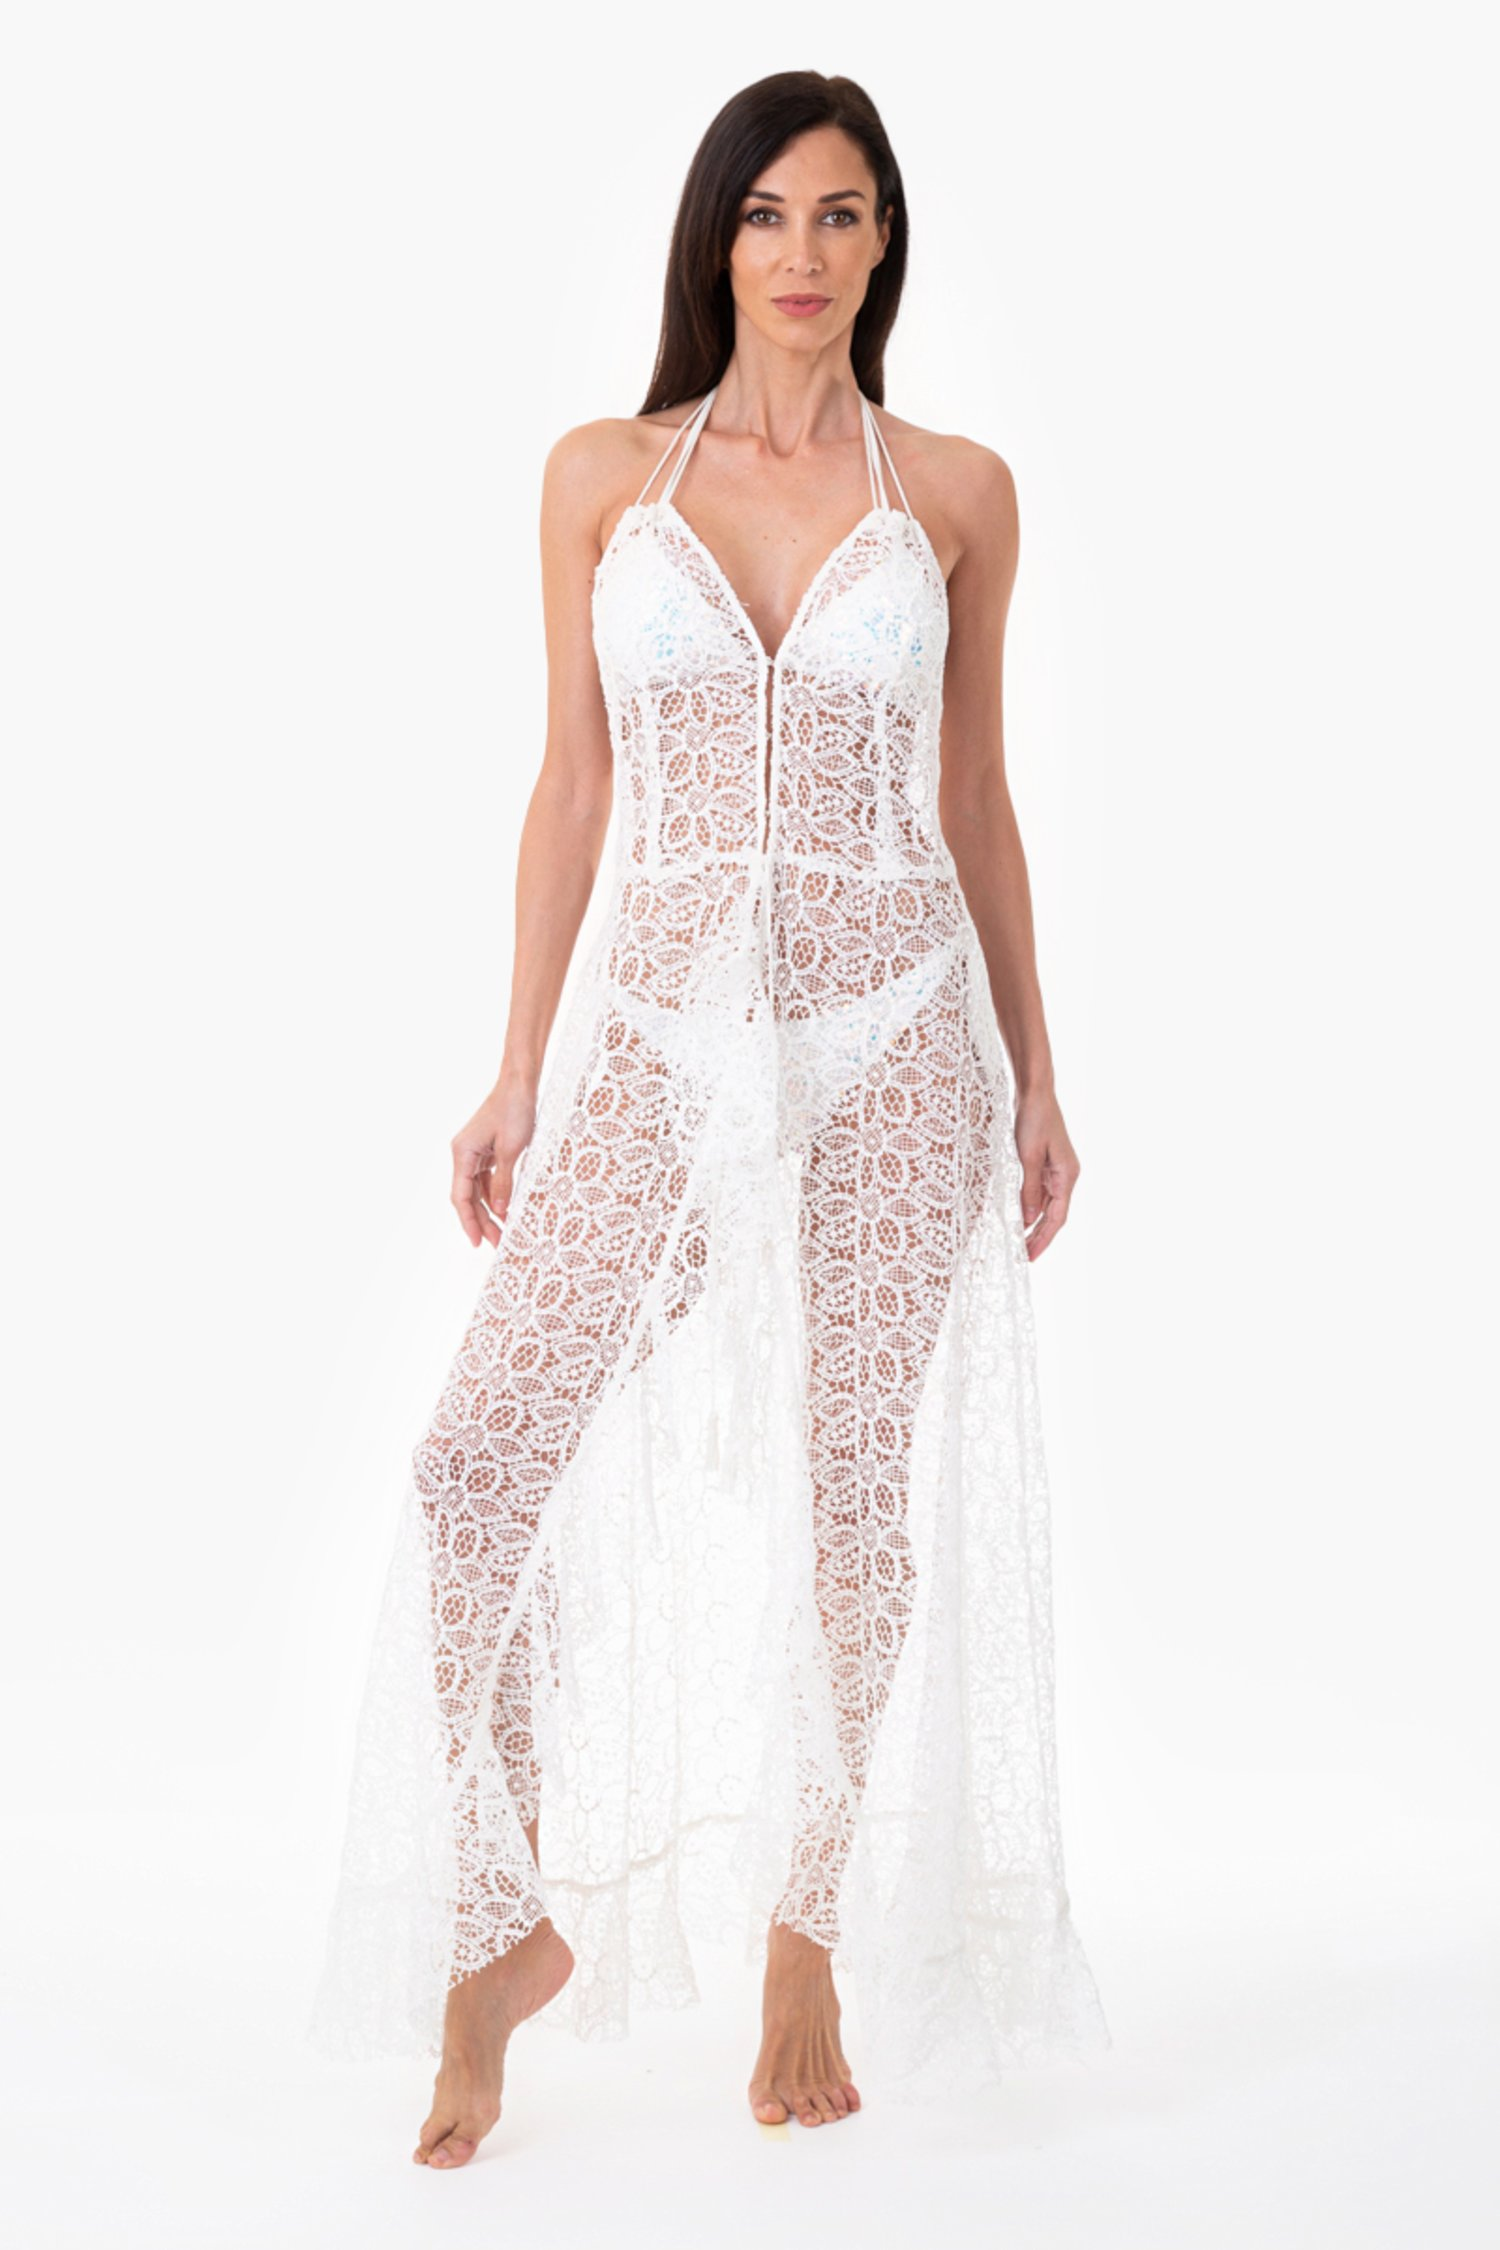 Long macramé lace dress - Pizzo Macrame' Bianco